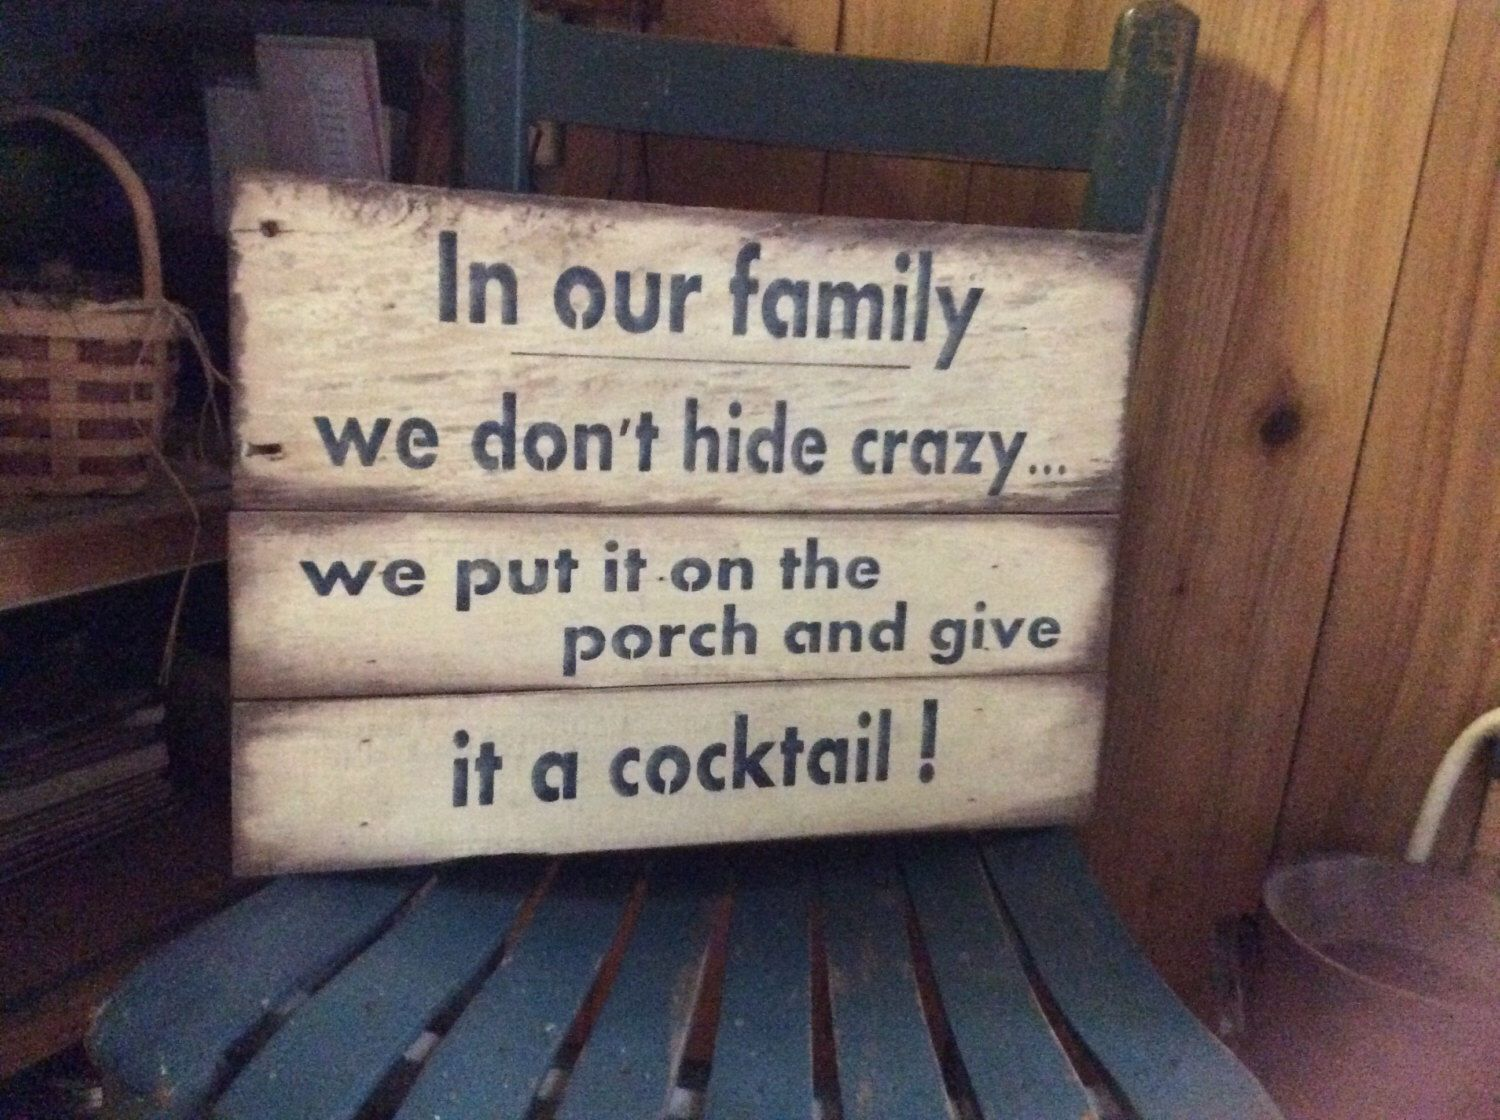 Porch signs welcome my porch barn wood quot what happens on the porch - Pallet Wood Sign In Our Family Porch Sign By Makeitmary On Etsy Https